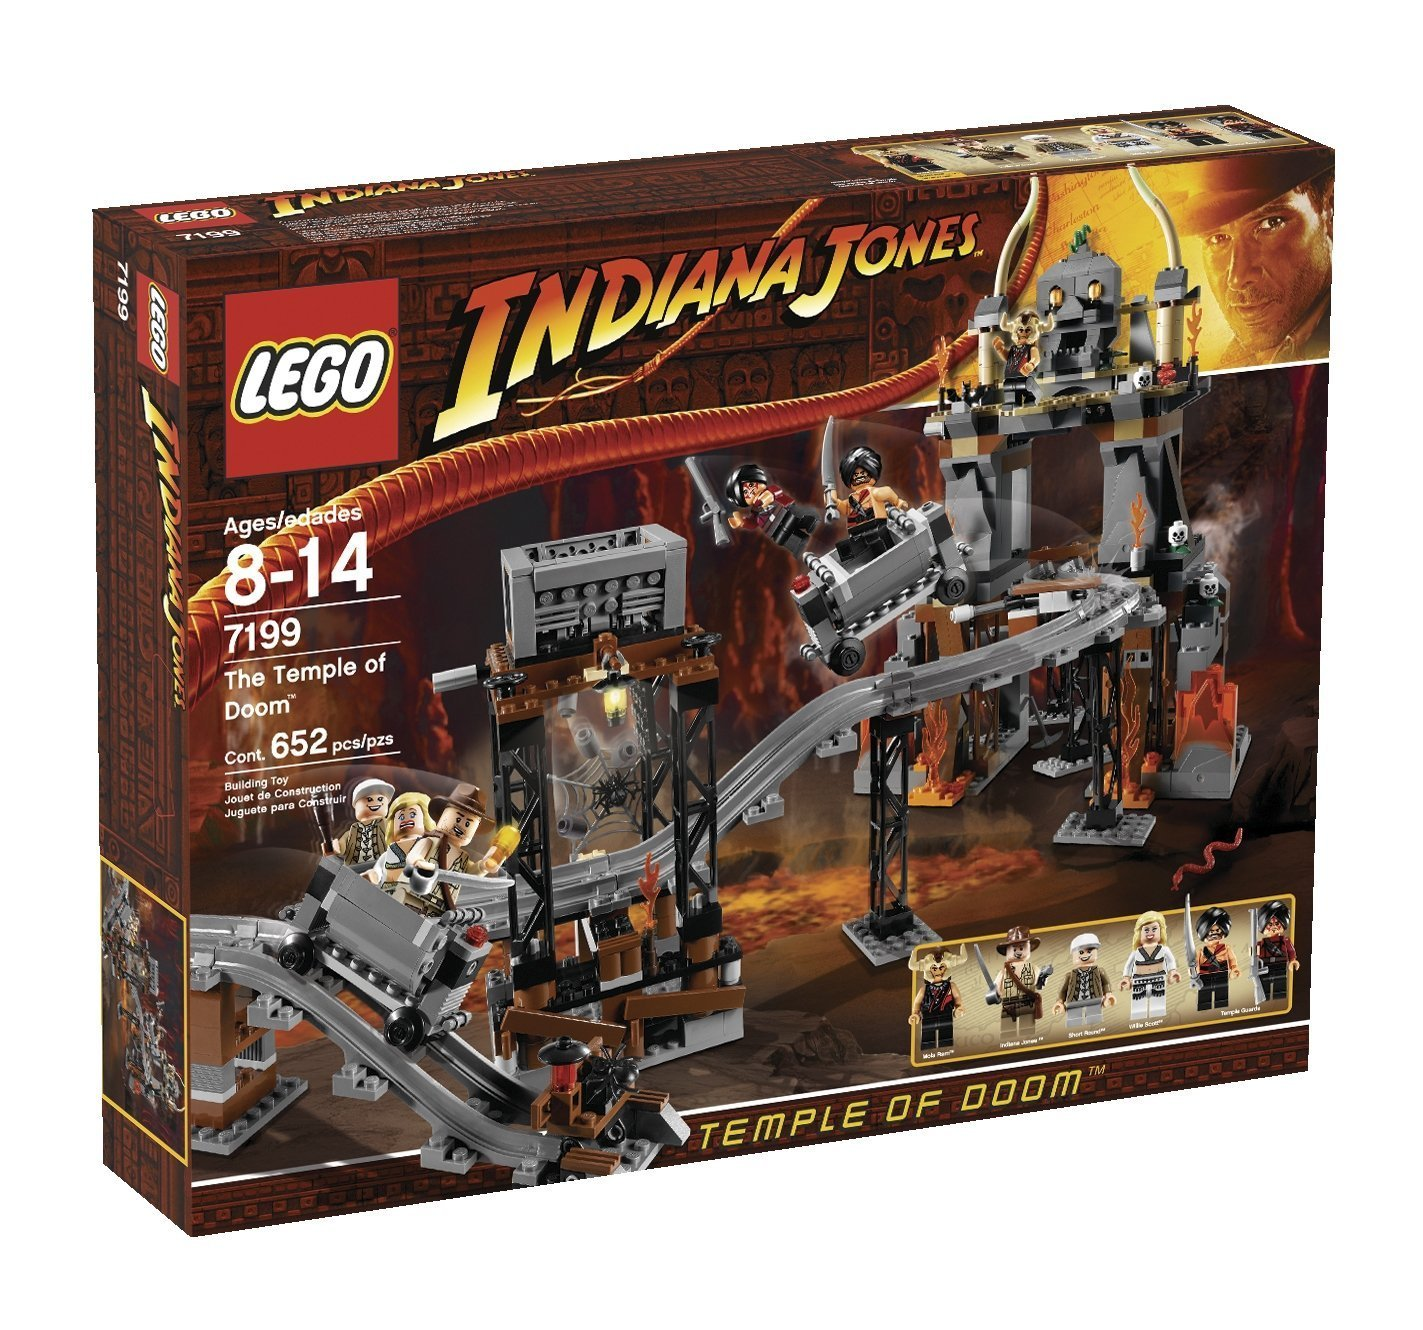 amazon com lego indiana jones temple of doom 7199 toys u0026 games